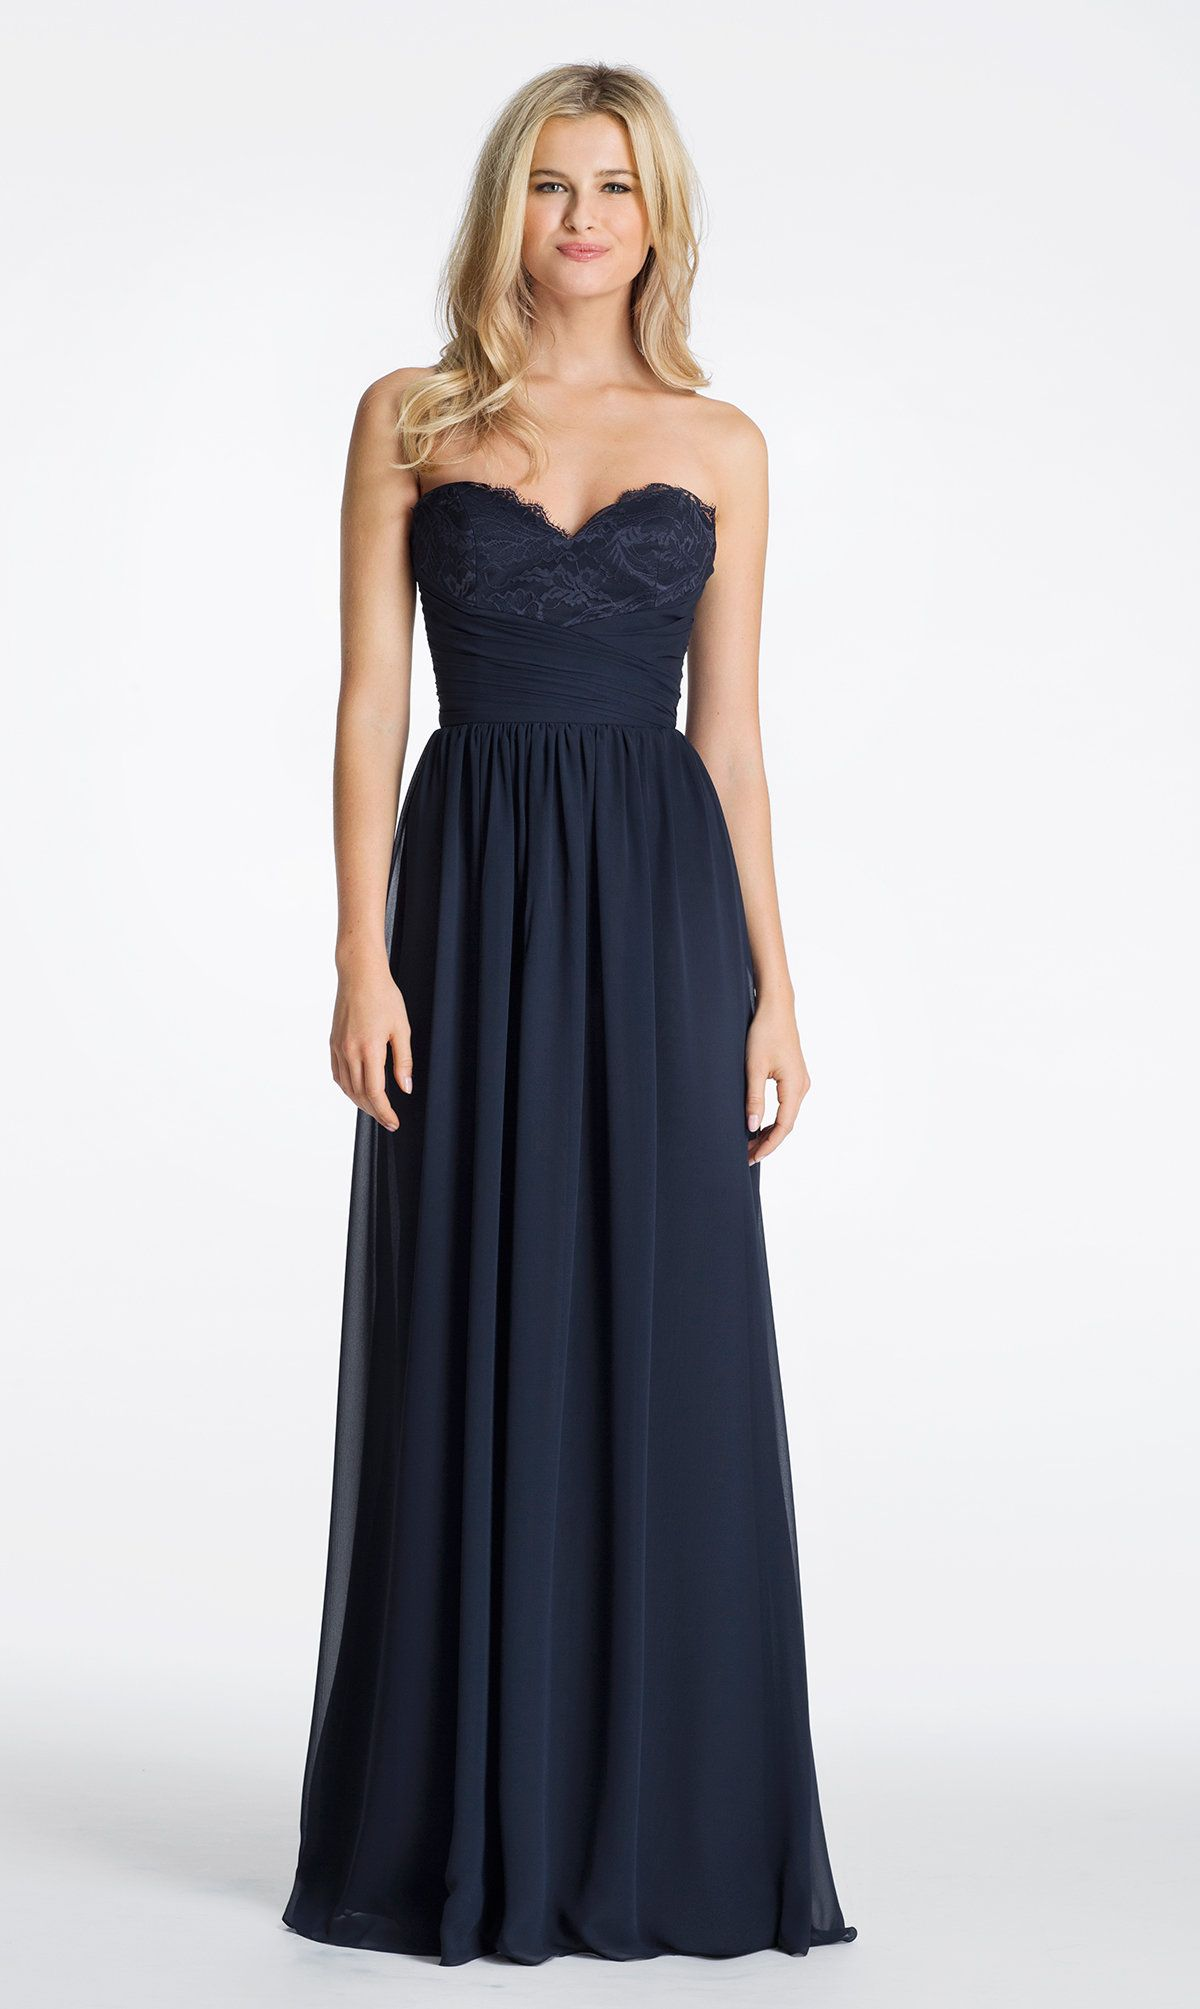 Best wedding dresses for short waisted  Style  Alternate View  Wedding Party Attire  Ladies